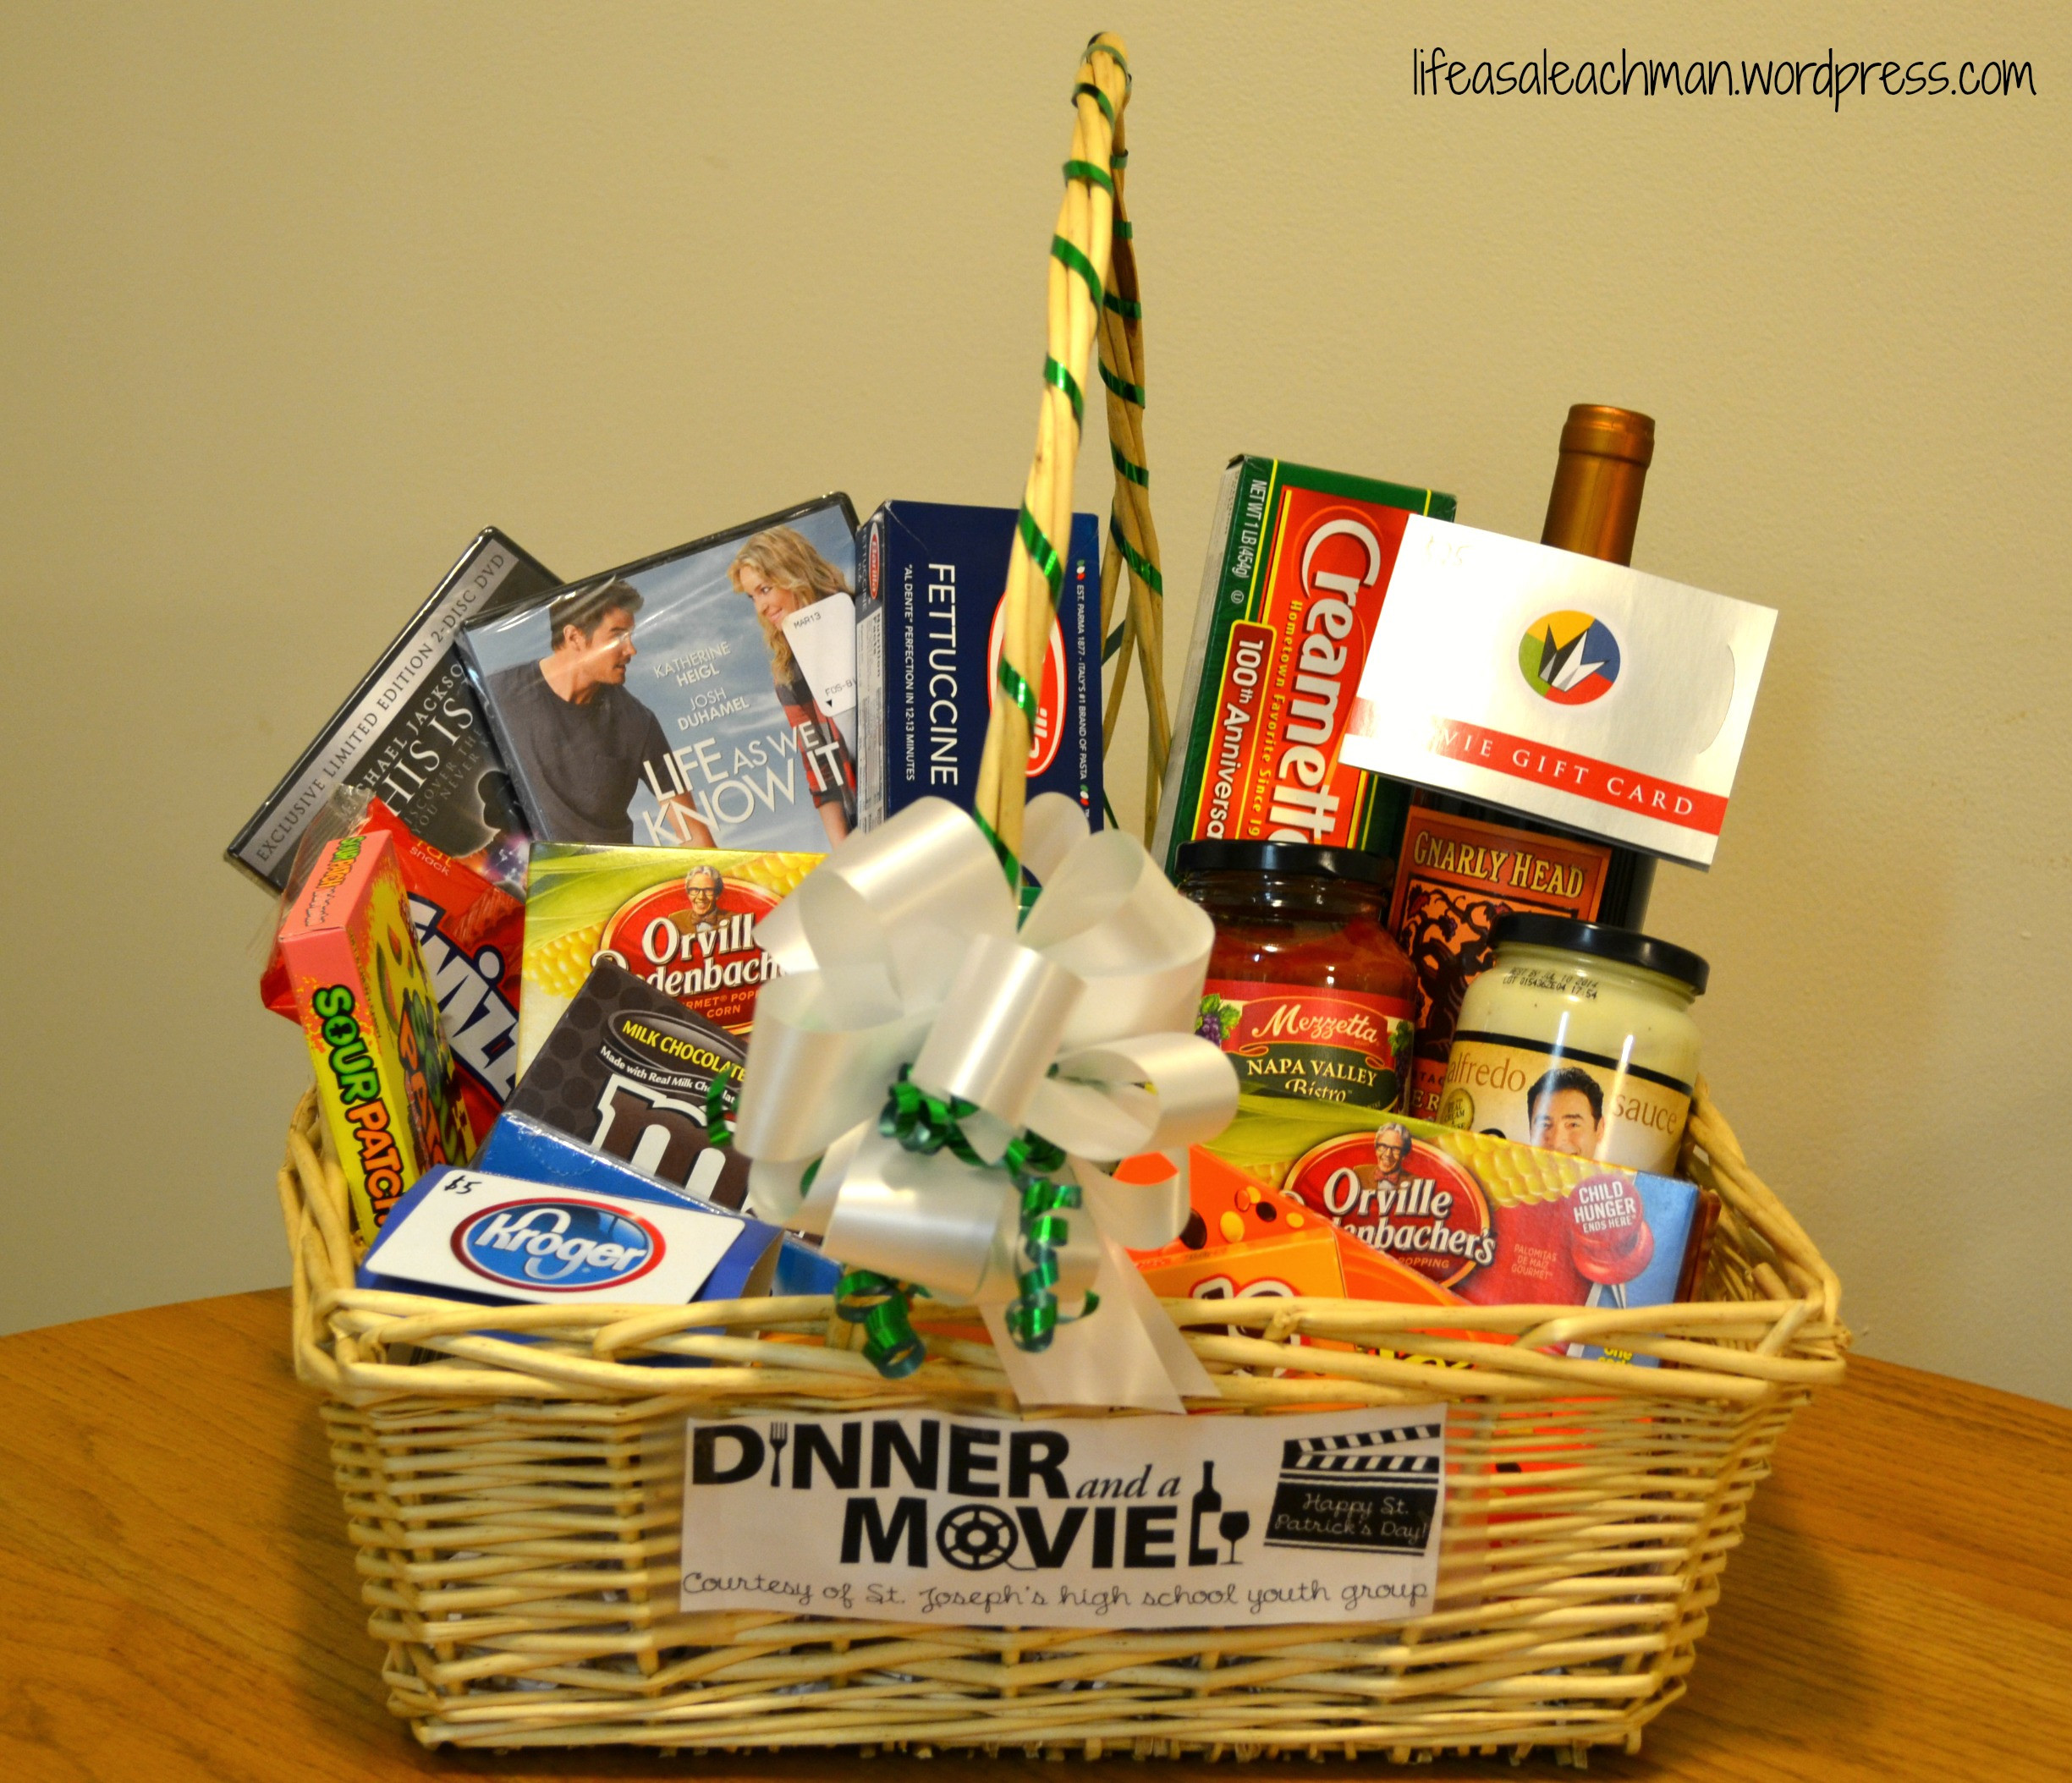 Best ideas about Ideas For A Movie Theater Gift Basket . Save or Pin 'Dinner & a Movie' t basket Now.